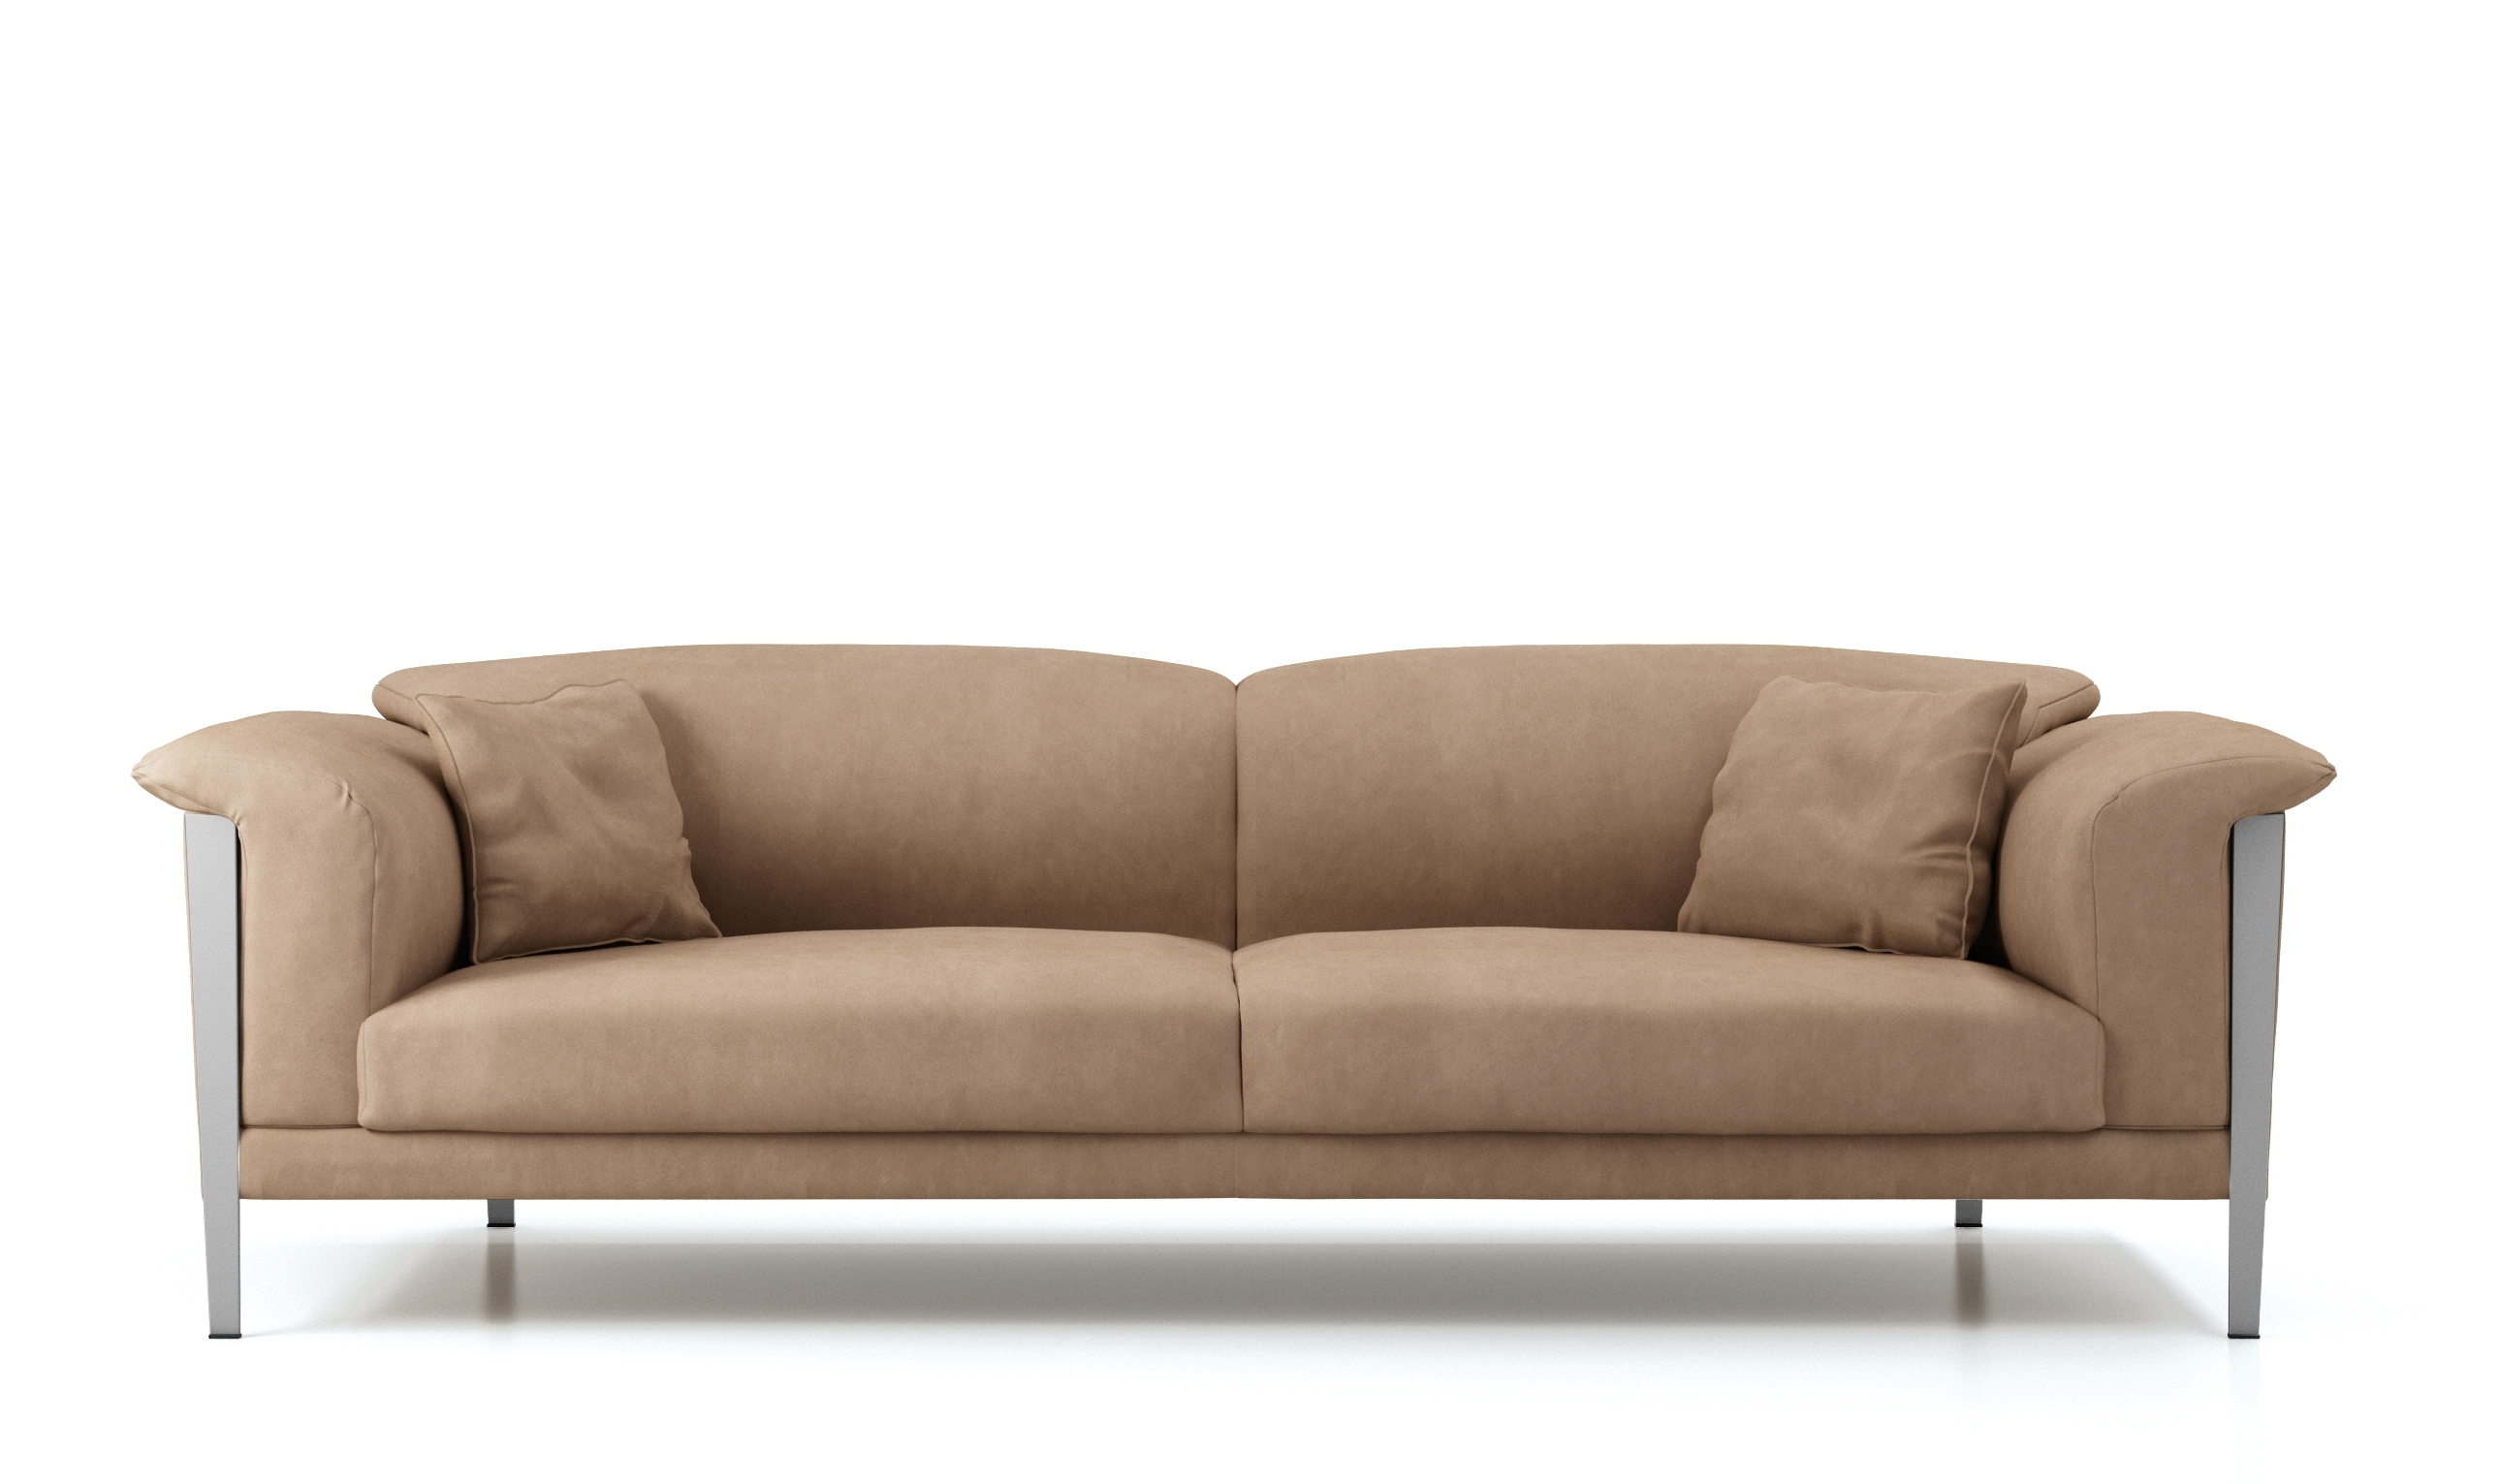 Soft Sofas For Well Known Cream Color Extra Soft Padded Leather Sofa Set Sacramento (View 4 of 15)